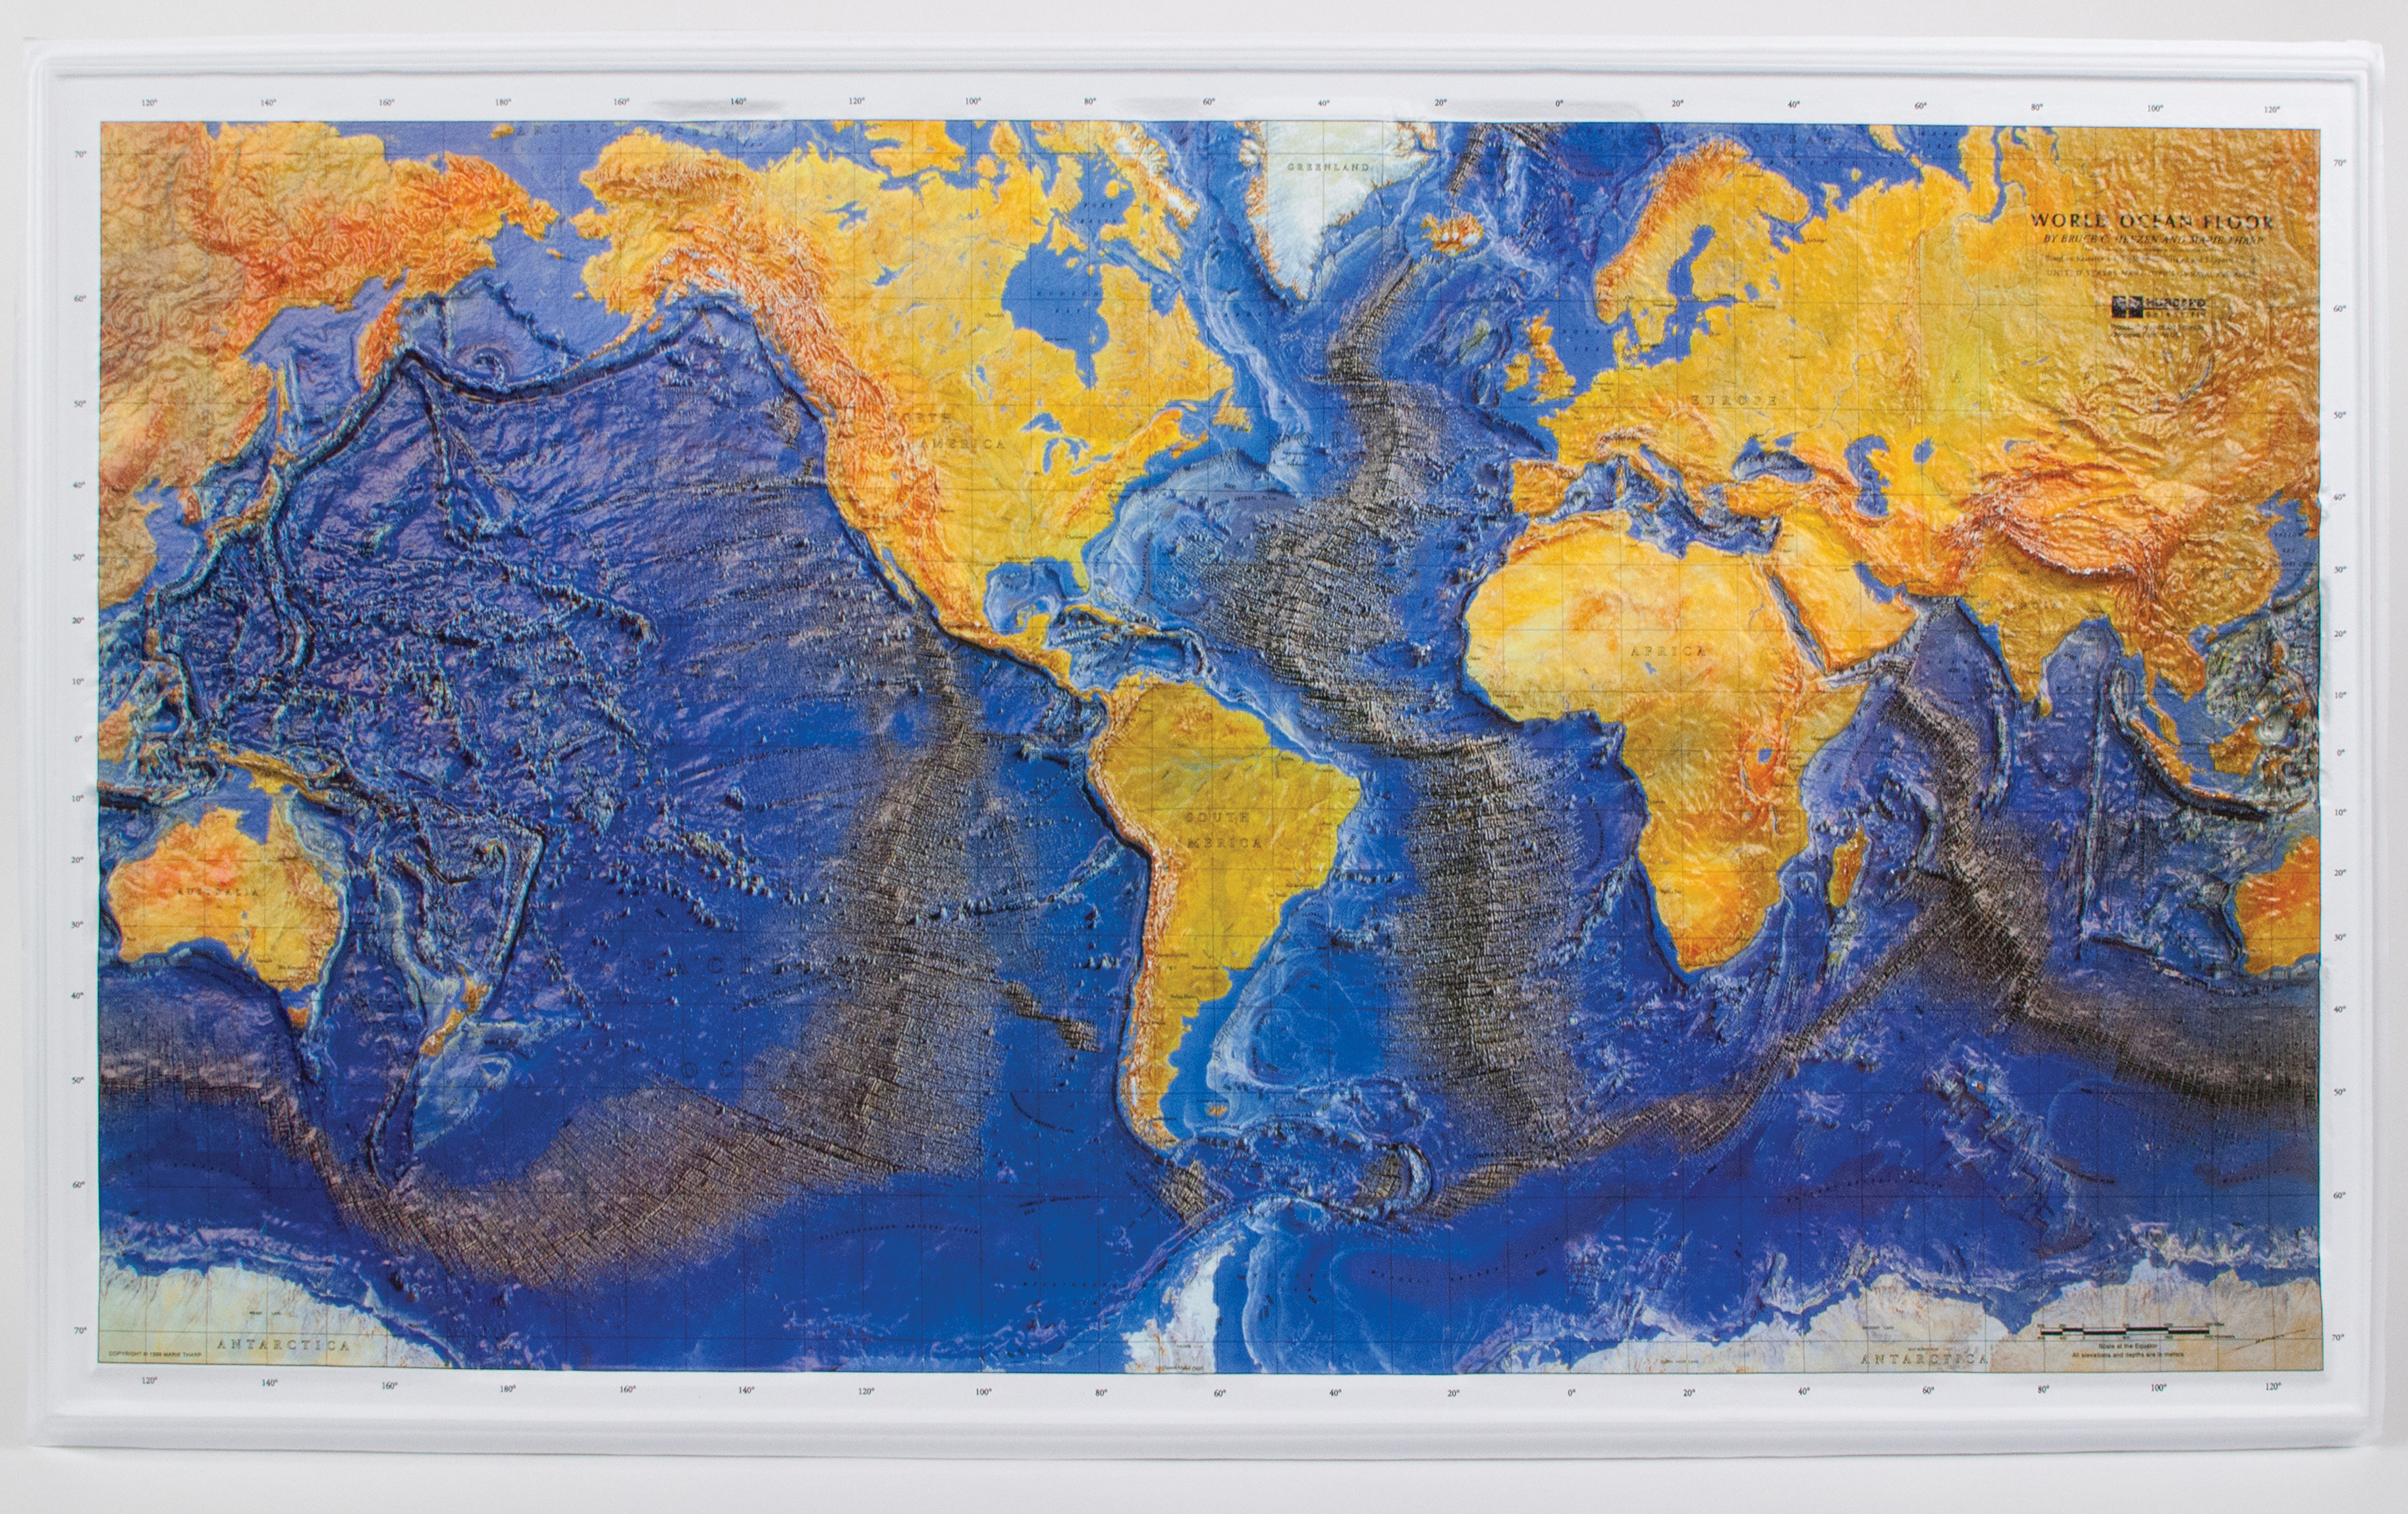 Ocean Floor Elevation Map : Topographic maps of the ocean floor my